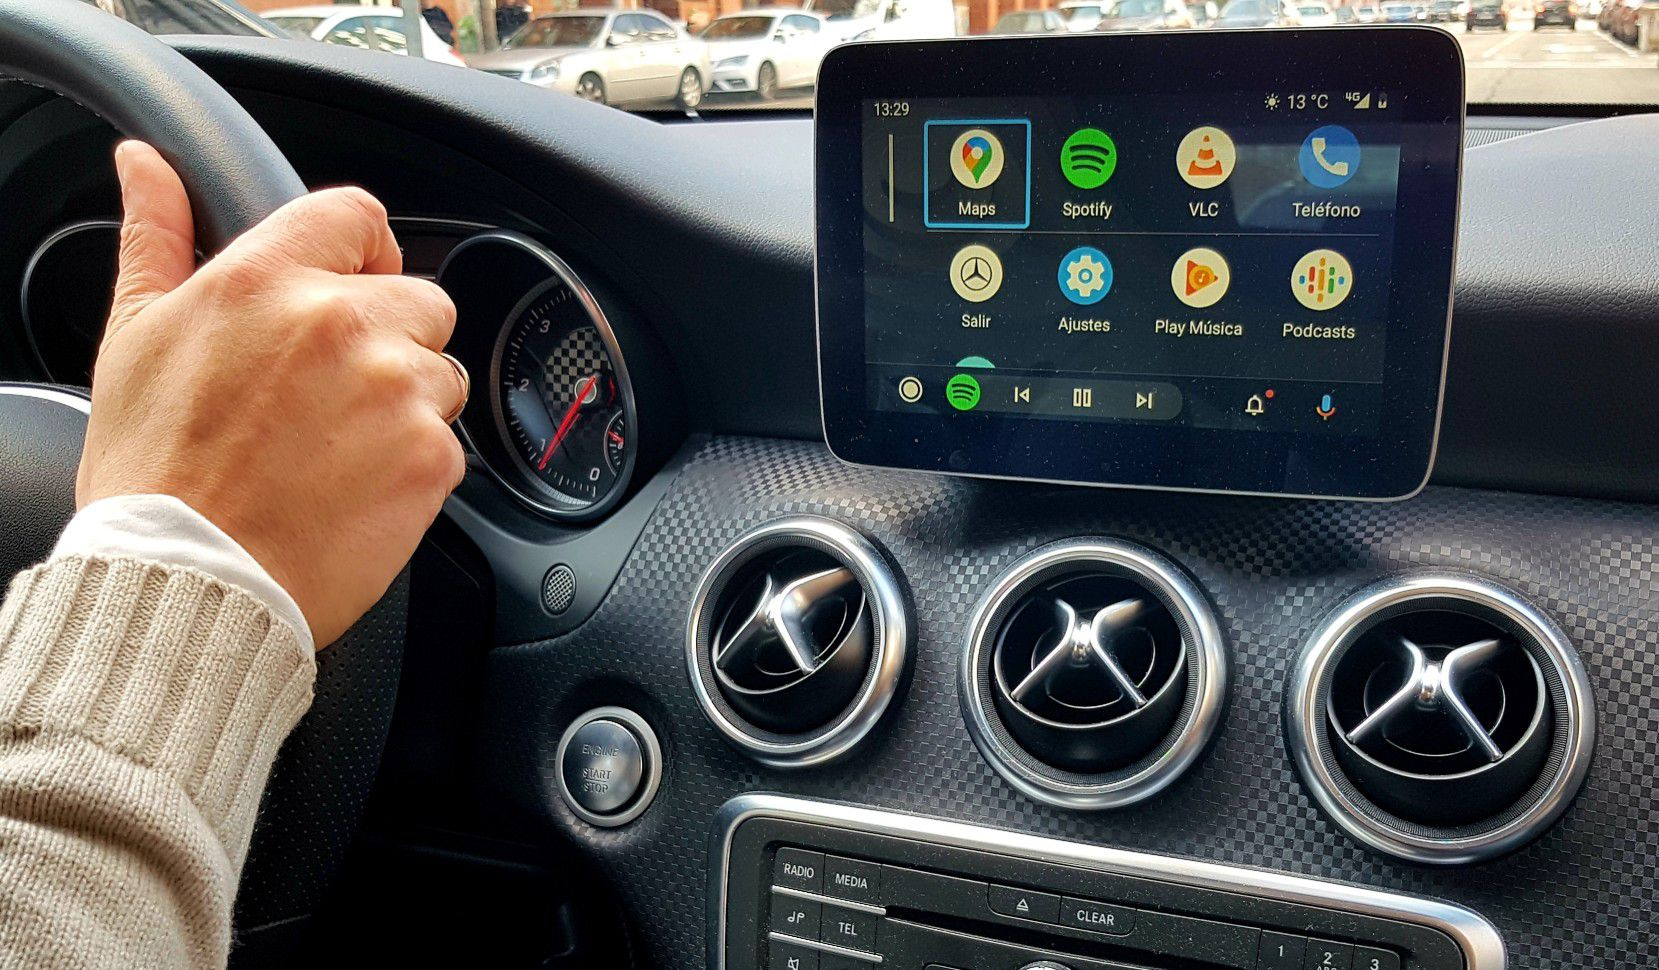 device to connect the mobile phone to the car apple carplay android carplay mobile phone connected to t20 6Yr9g6 19c73517056443a9b1c1584031292e17